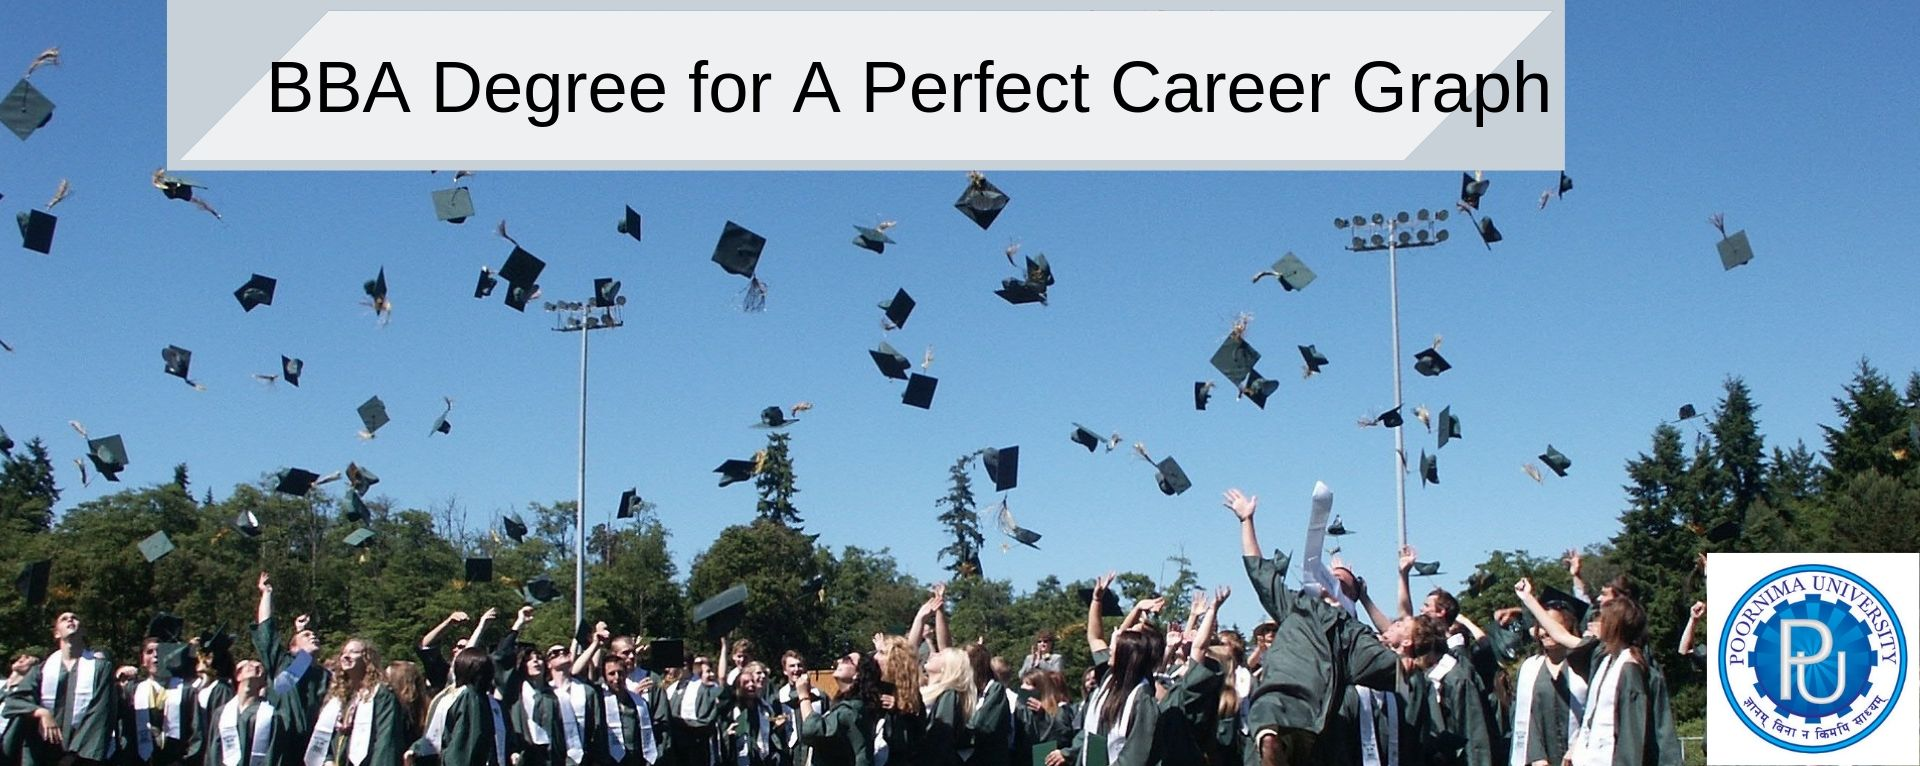 BBA Degree for A Perfect Career Graph Business degree